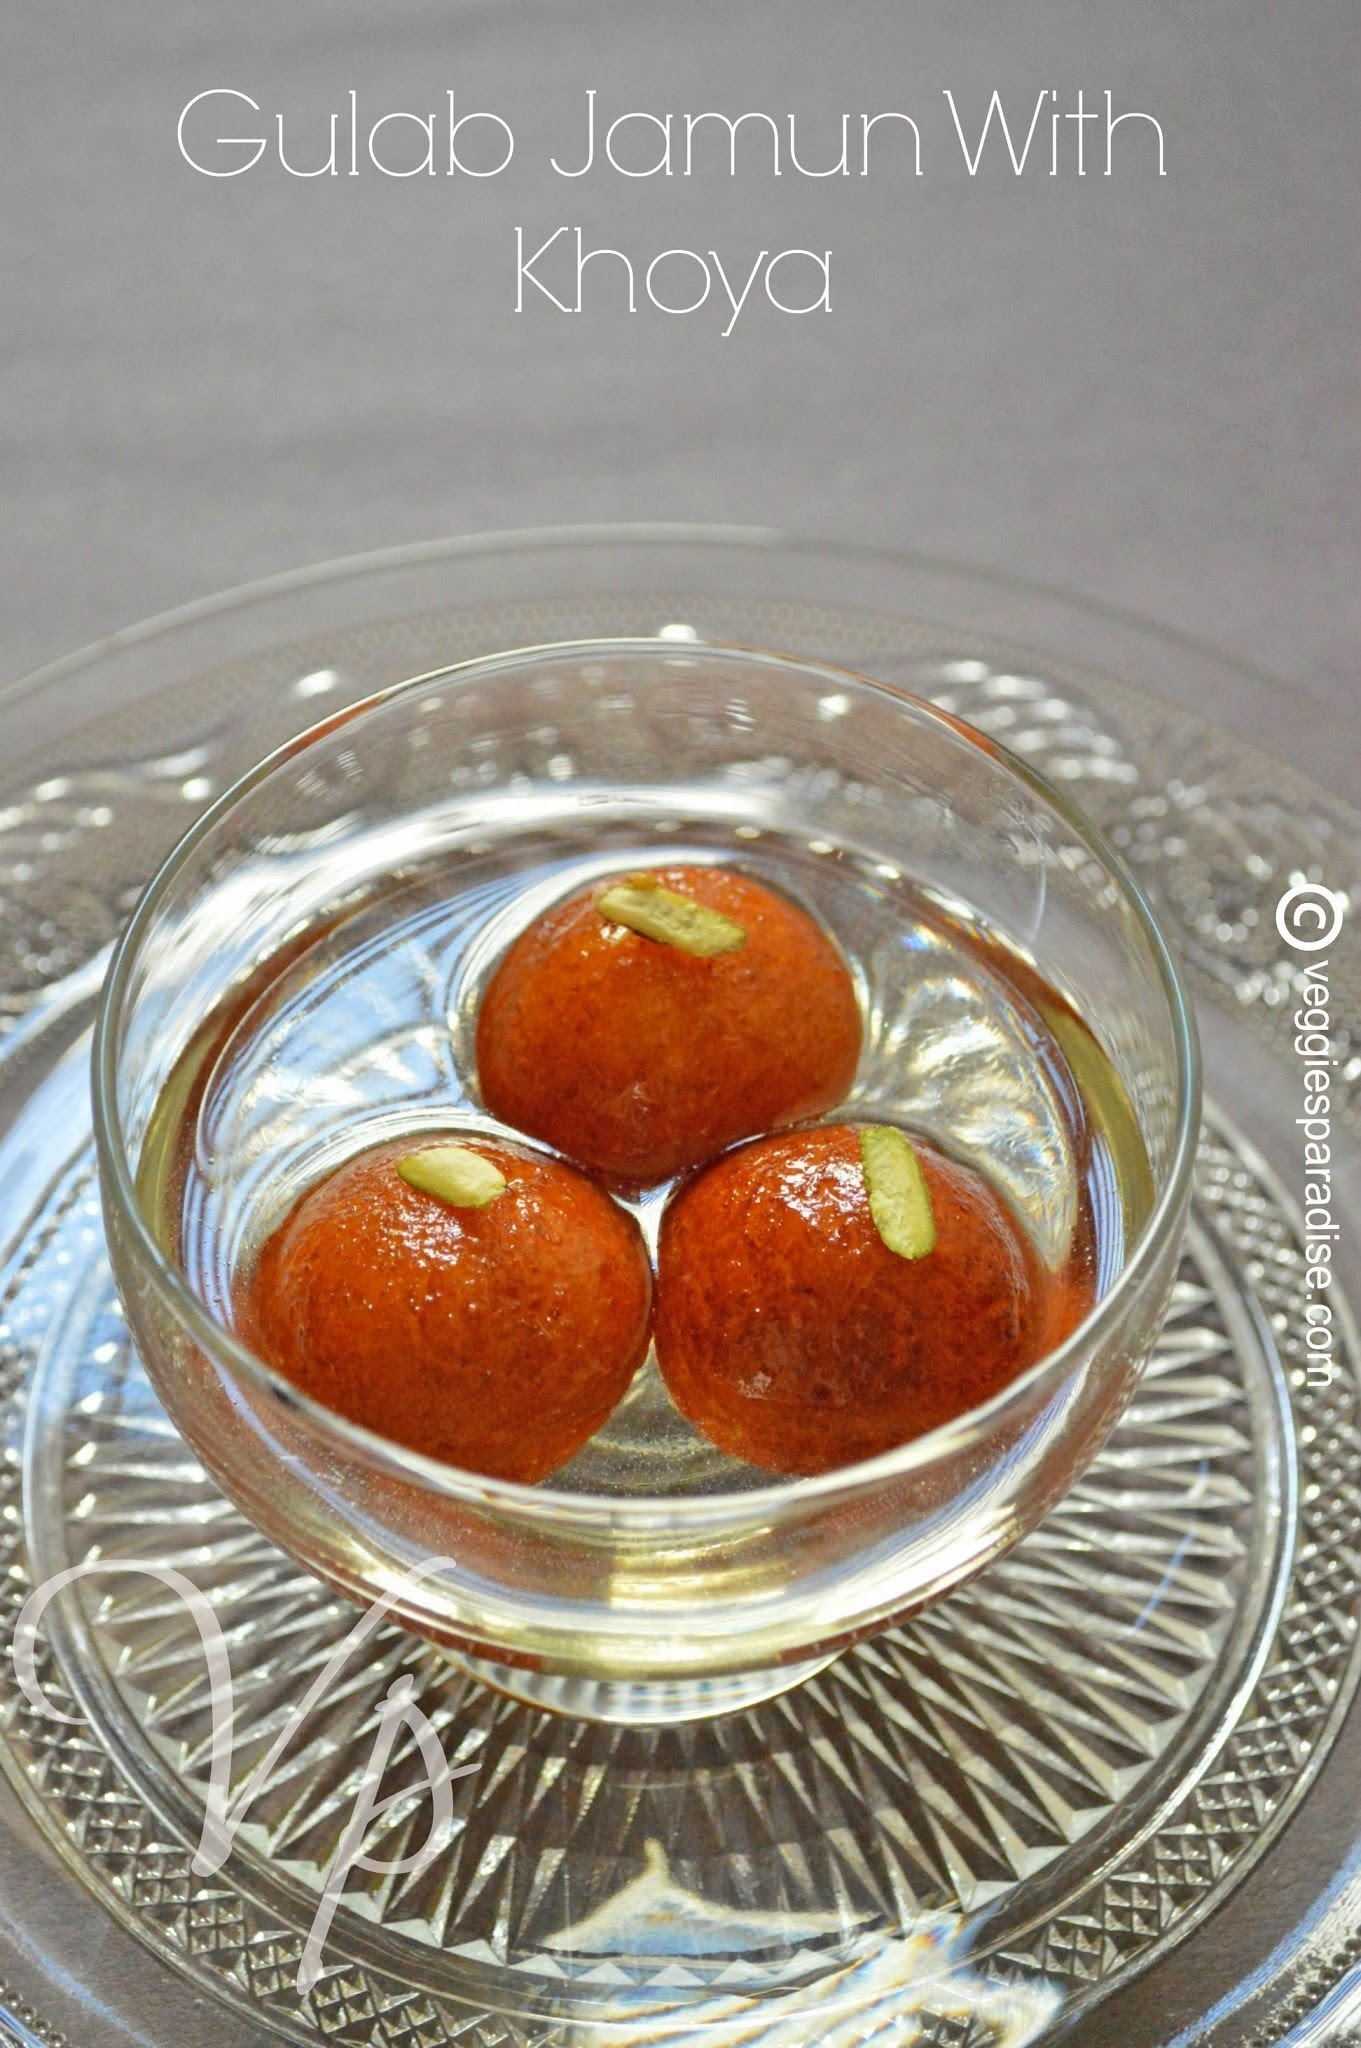 GULAB JAMUN RECIPE WITH VIDEO - GULAB JAMUN WITH KHOYA